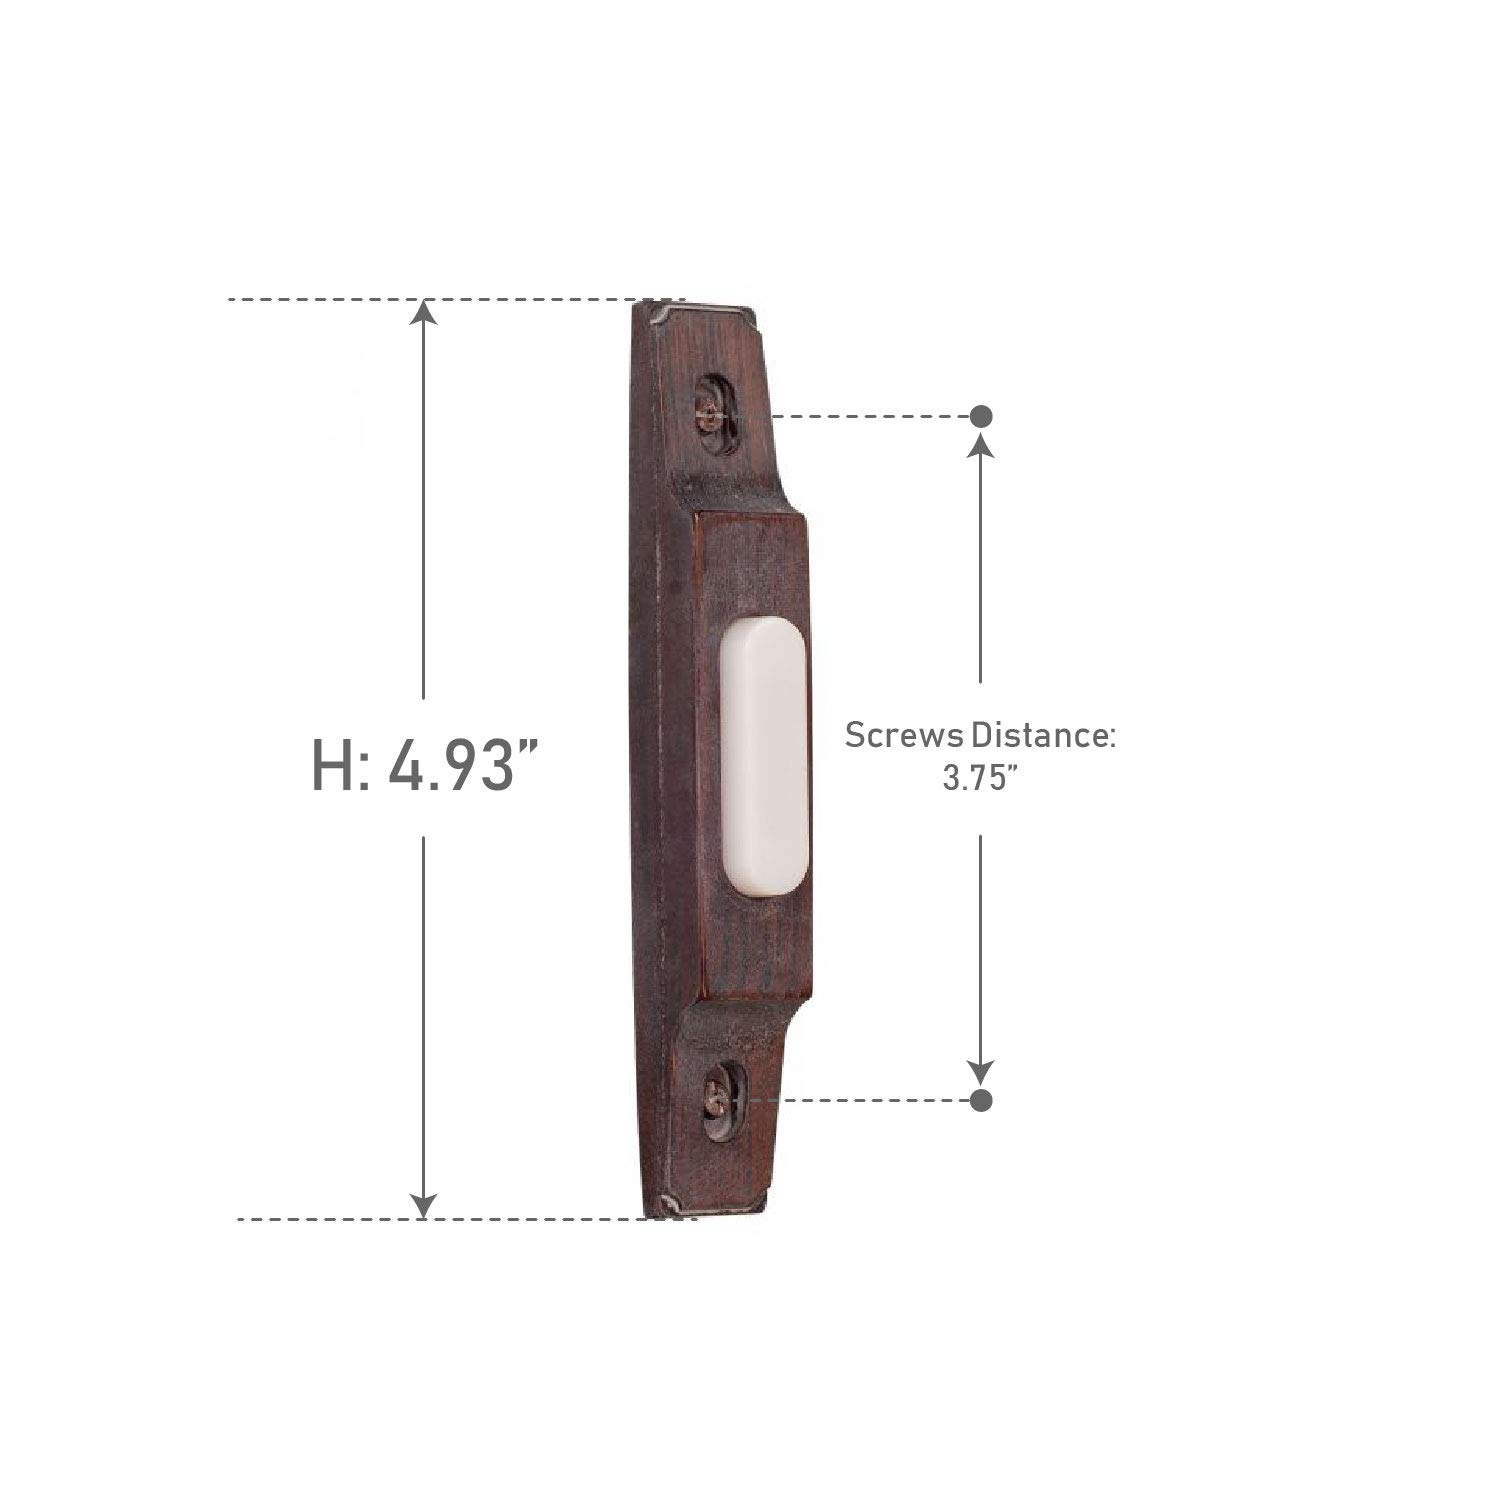 Craftmade BS3-RB Designer Surface Mount Thin Profile Lighted Doorbell LED Push Button, Rustic Brick (4.93''H x 0.75''W)